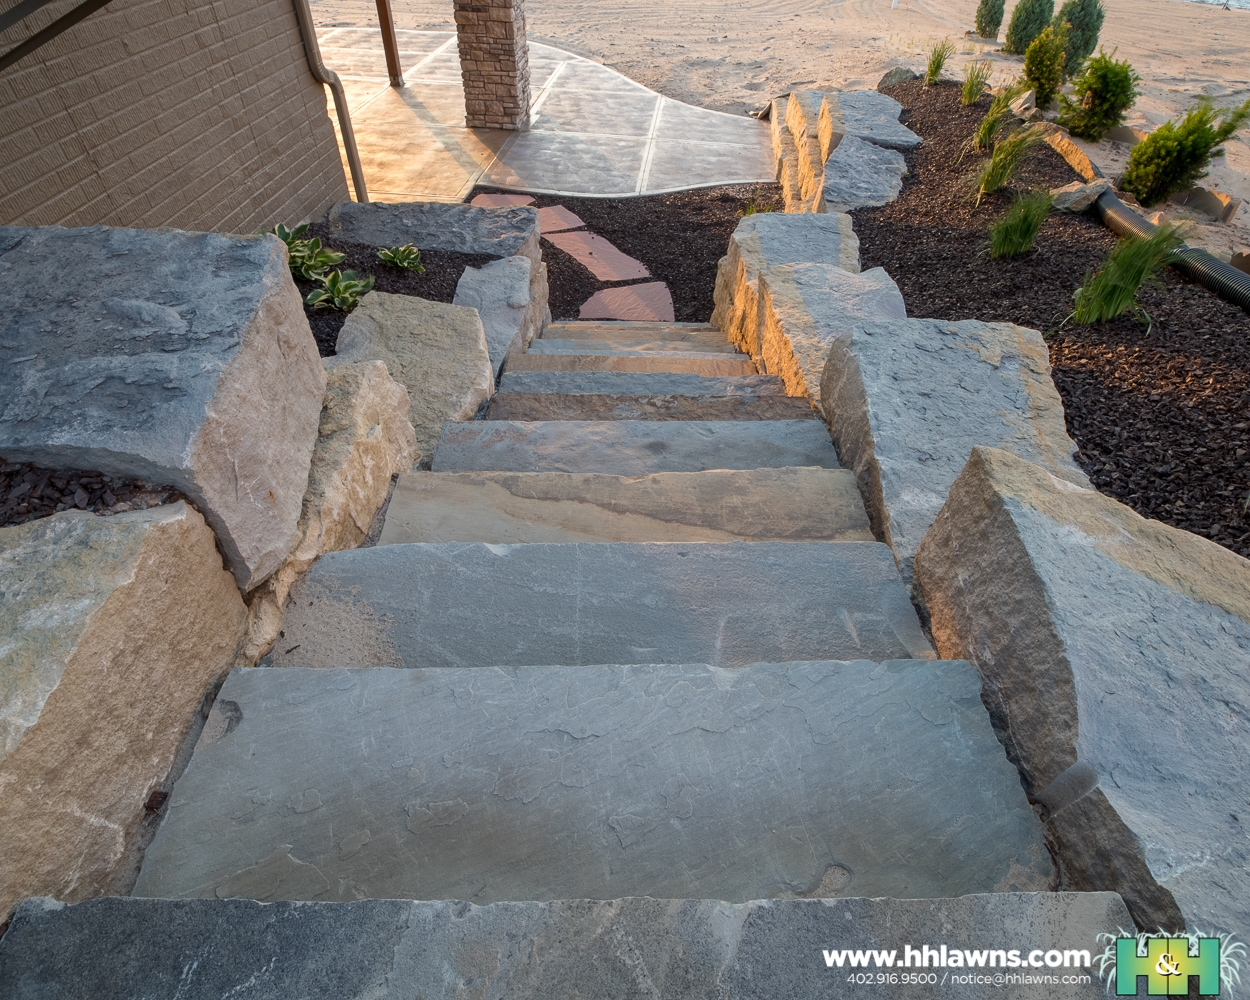 H&H Lawn and Landscape Hardscape Project